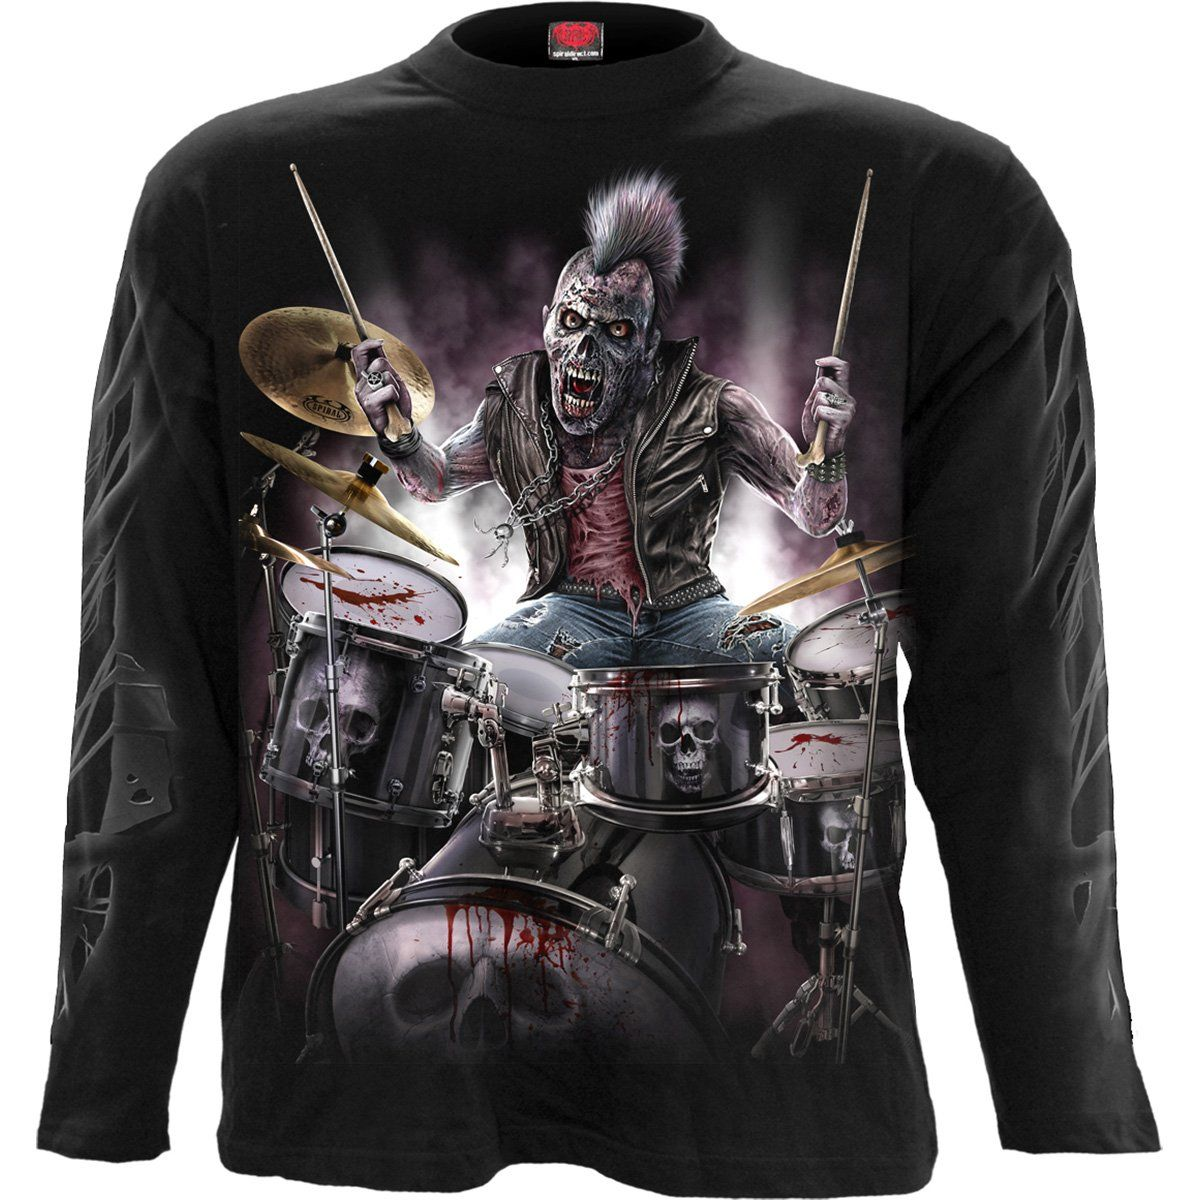 Zombie Drummer Men's Black Longsleeve Shirt